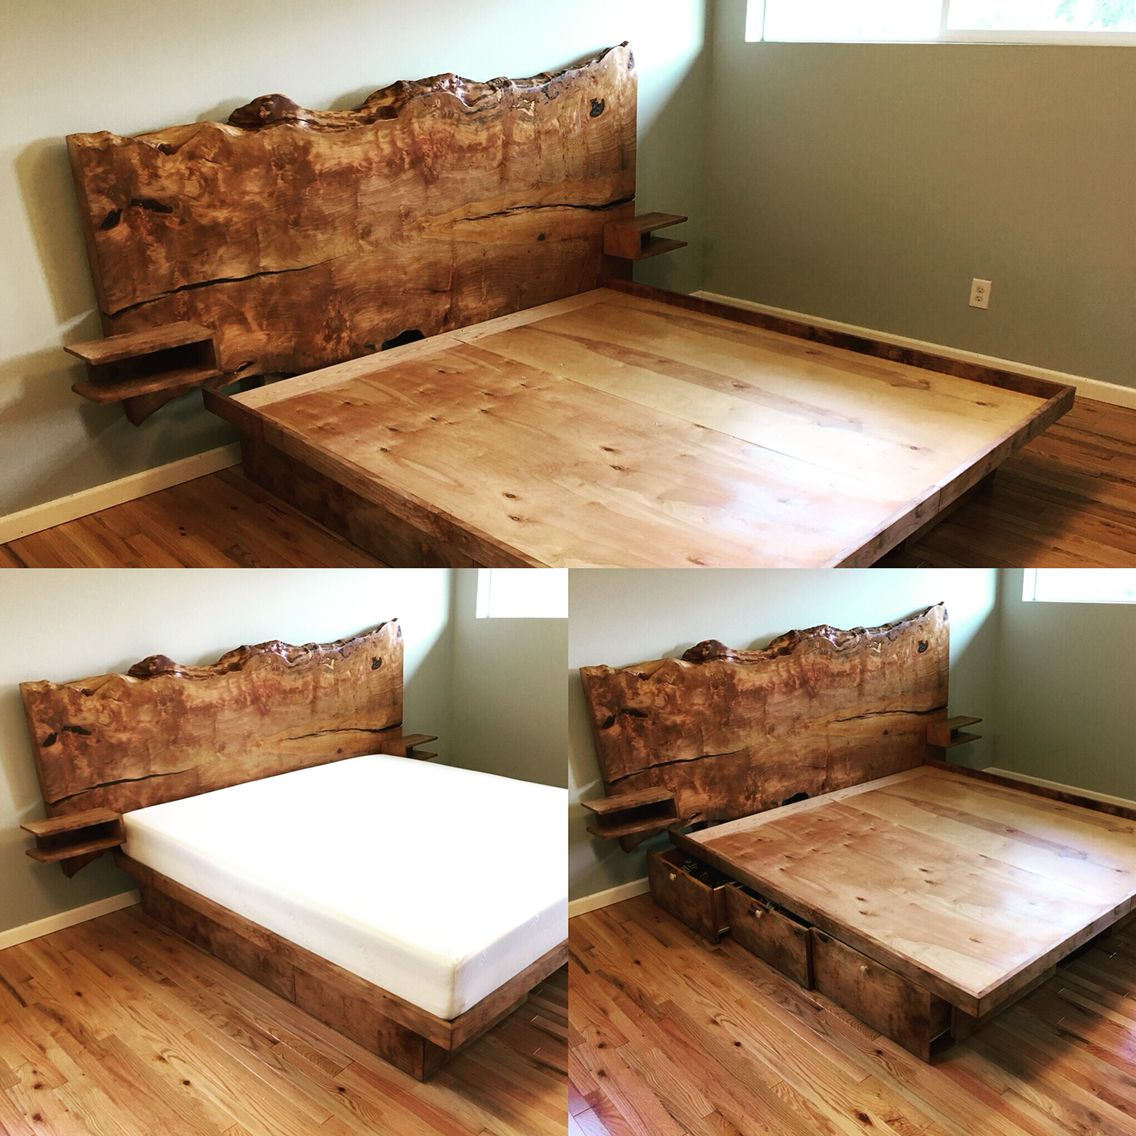 Sycamore Live Edge Platform King Bed Made By Emerald City Slabs Mattress By Tuft And Needle Emeraldcityslabs Live Edge Bed Value City Furniture Furniture